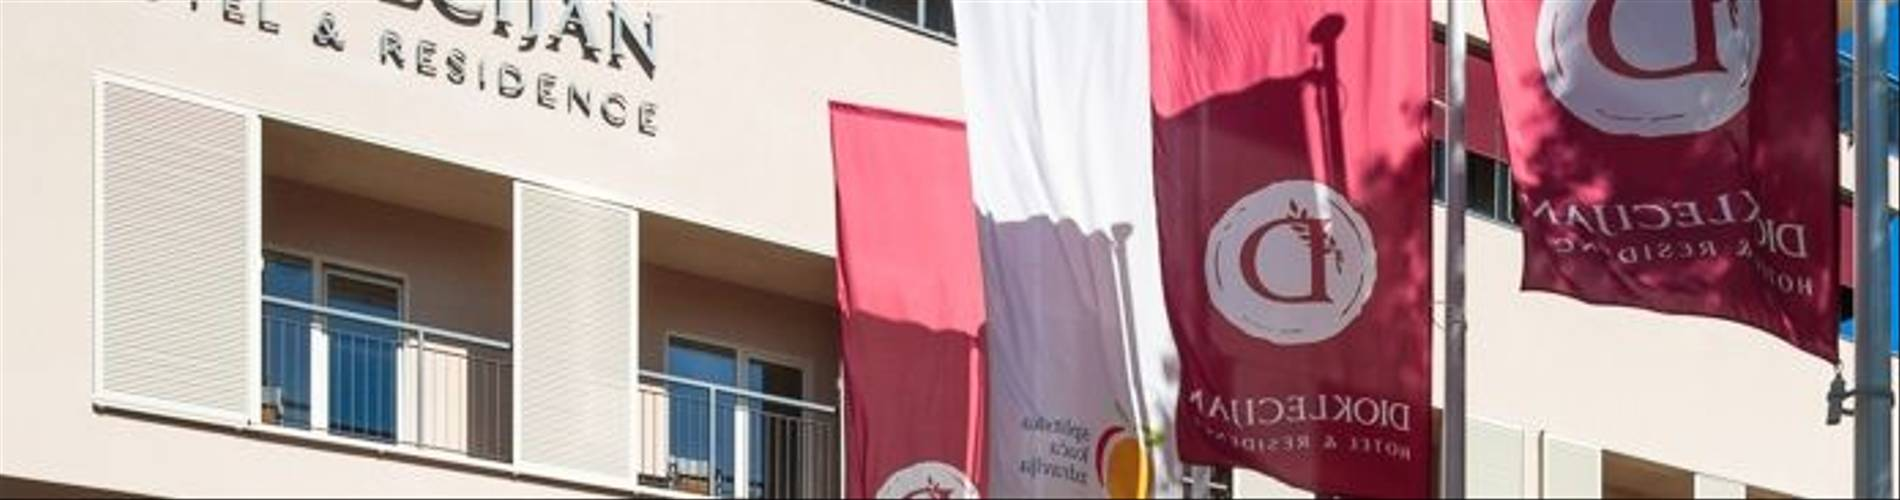 HotelResidence_DIOKLECIJAN_hotel-entrance-flags-day-vertical_2048px_3S8C5839-695x409.jpg